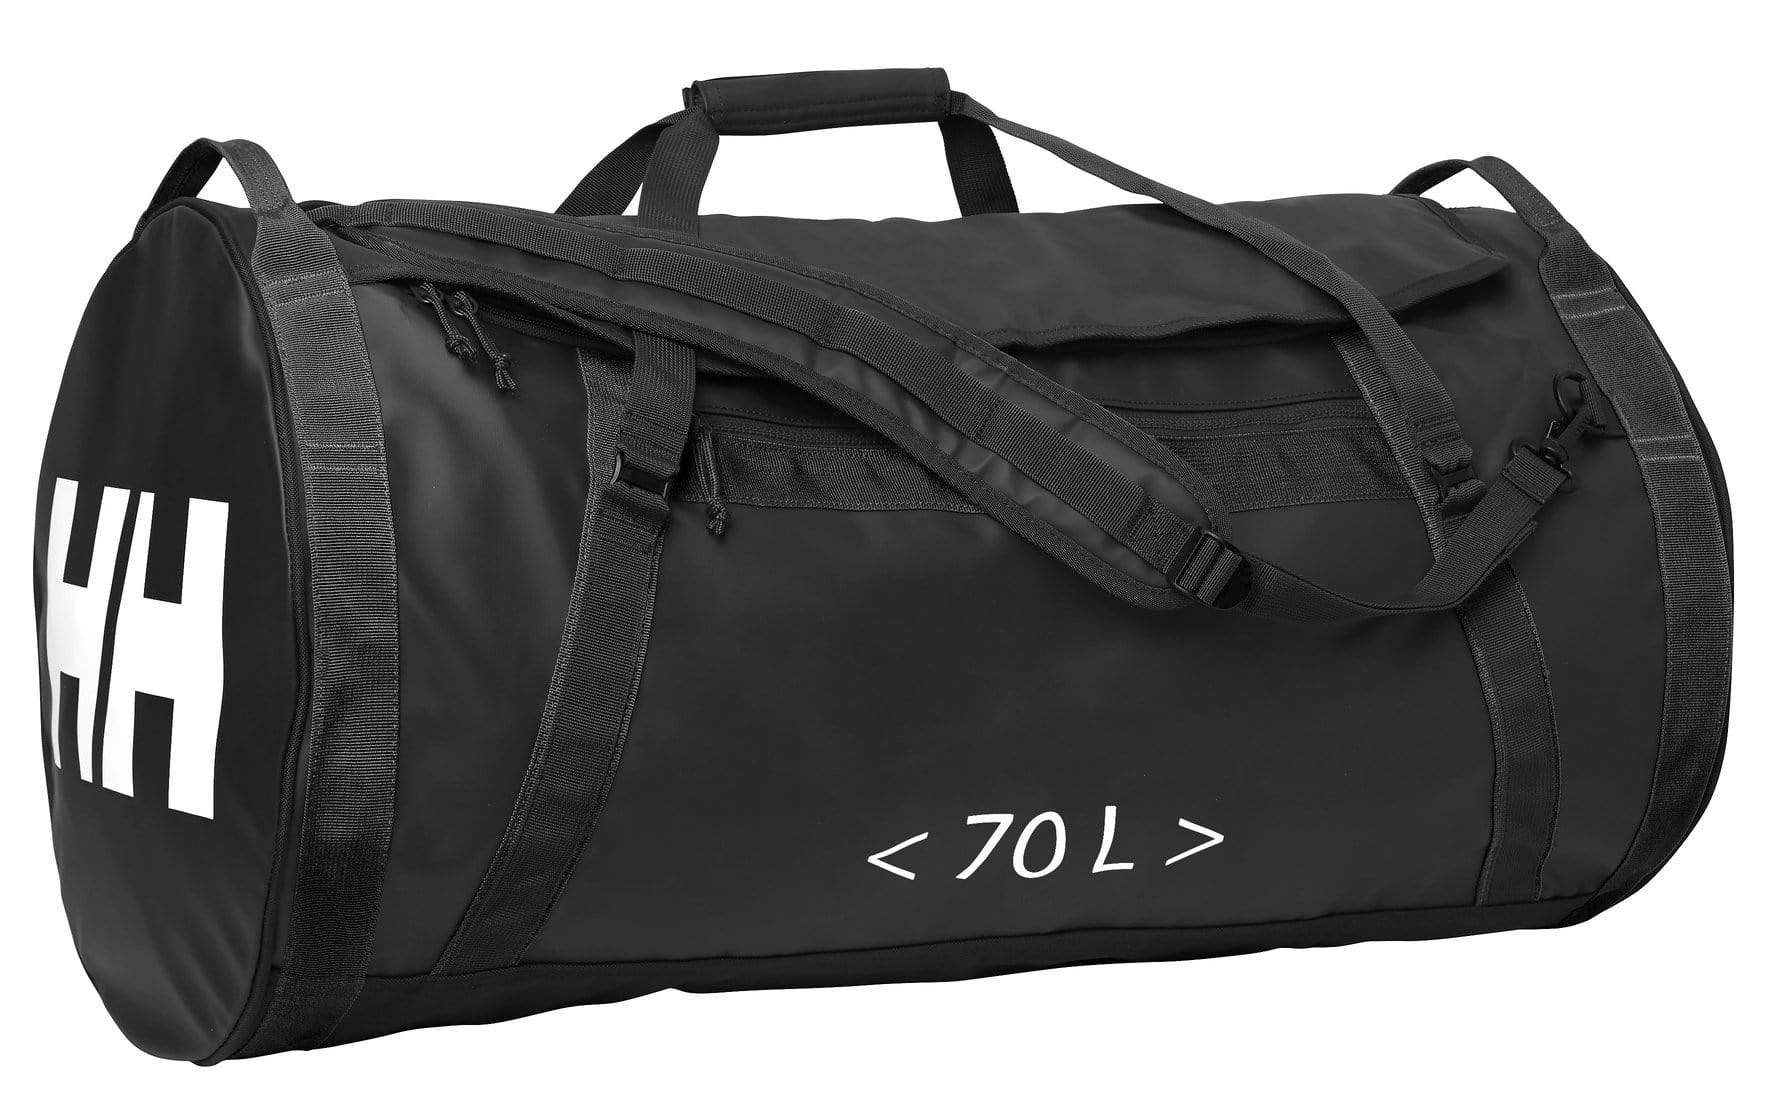 Helly Hansen Bags One Size / Black Helly Hansen - HH DUFFEL BAG 2 70L